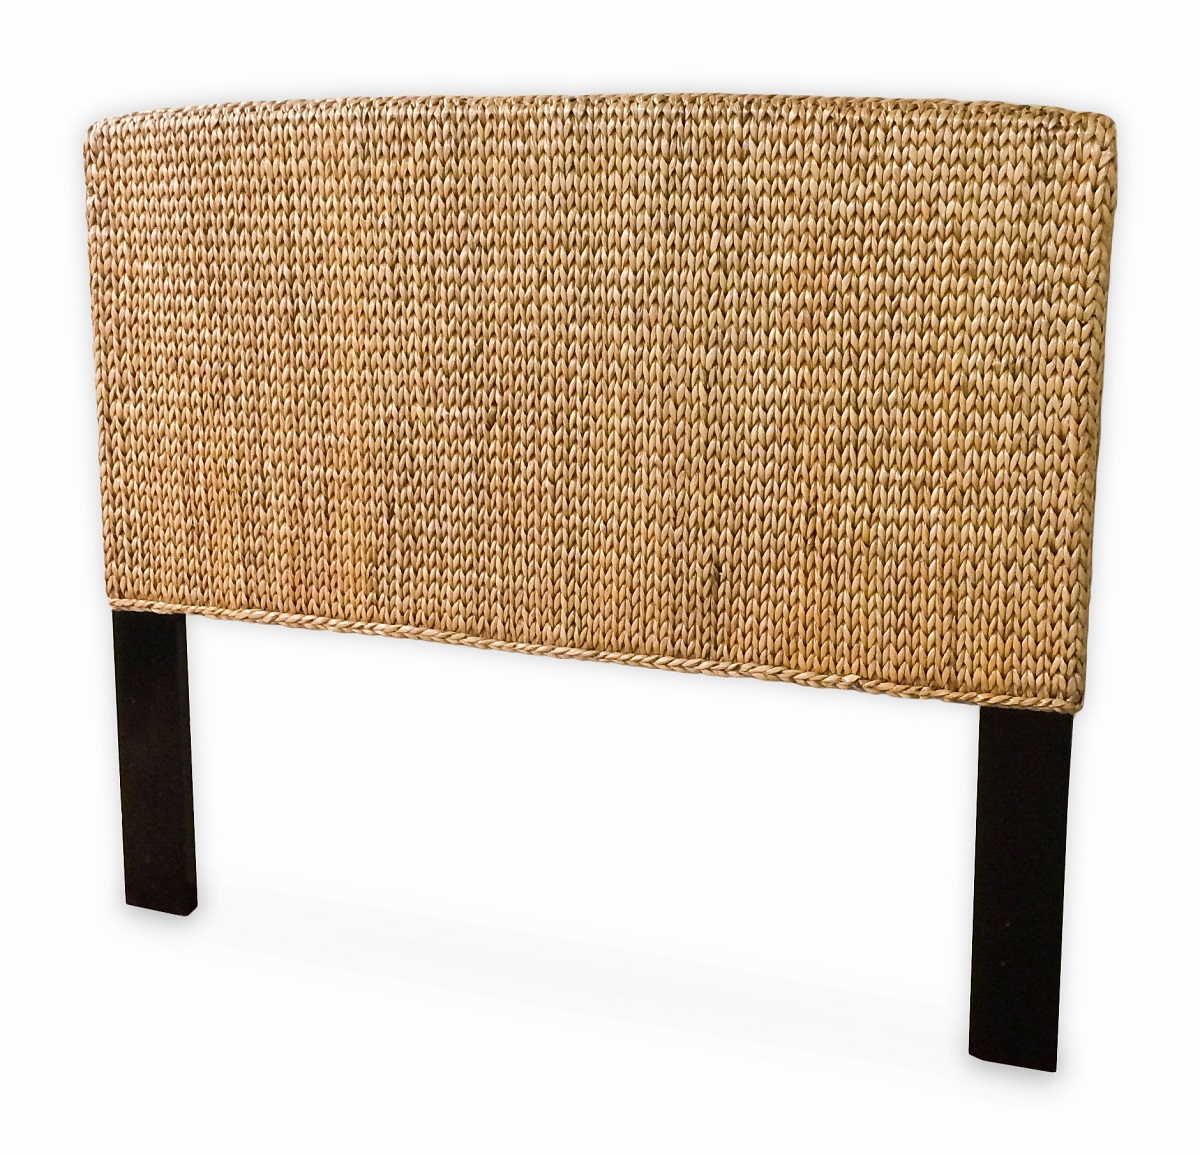 Replacement Cushions Outdoor Furniture